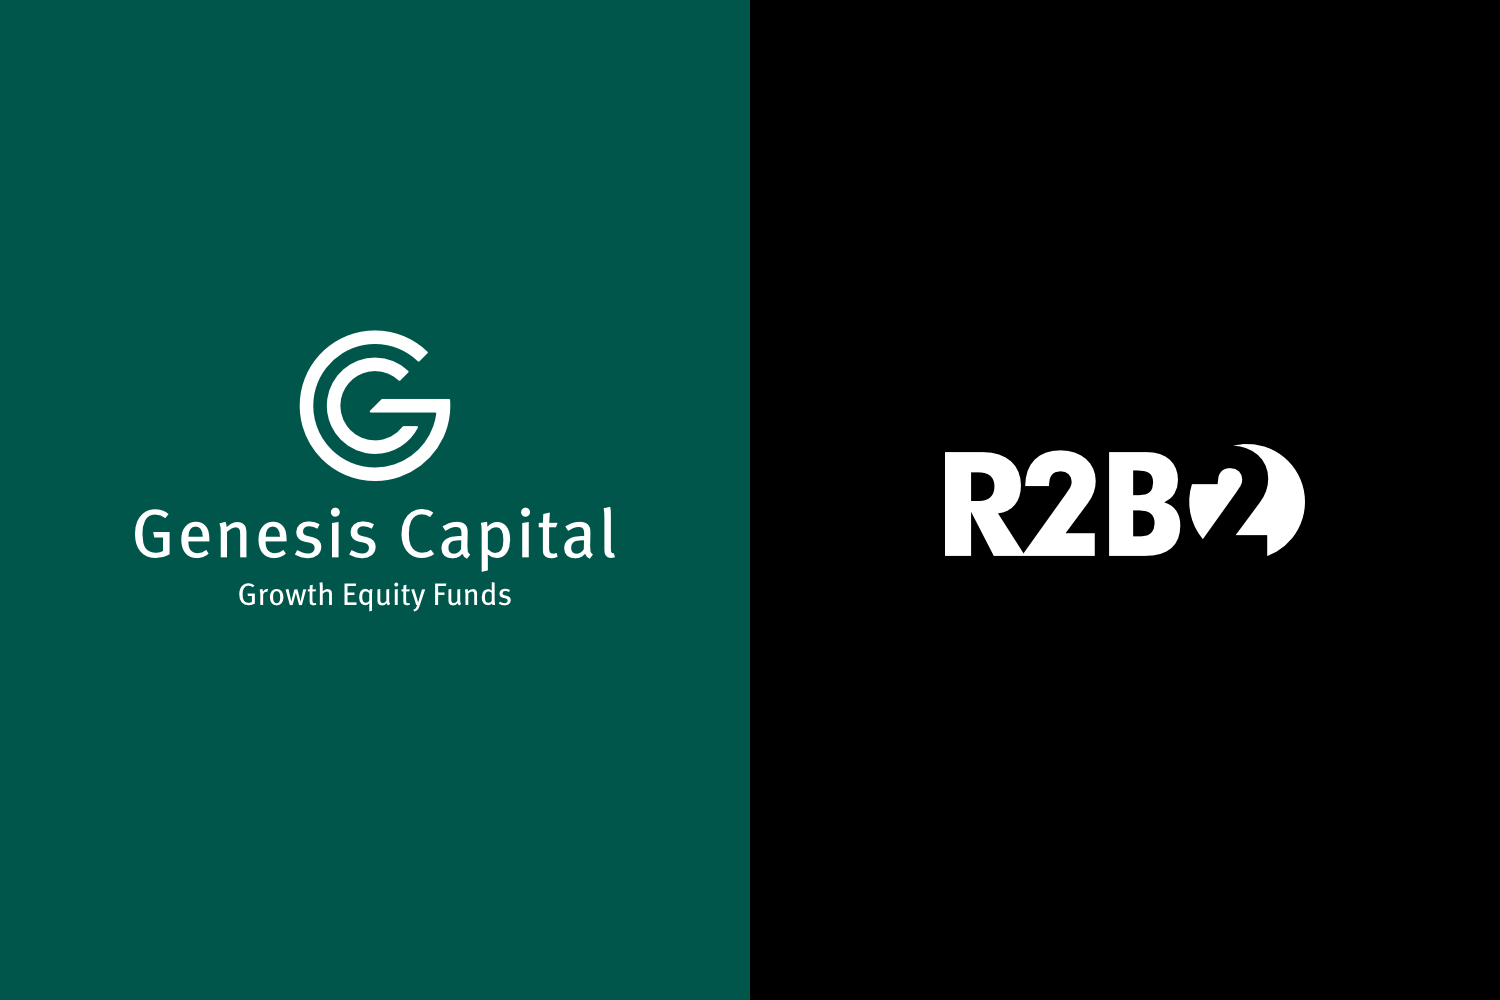 Genesis Growth acquires a majority stake in R2B2